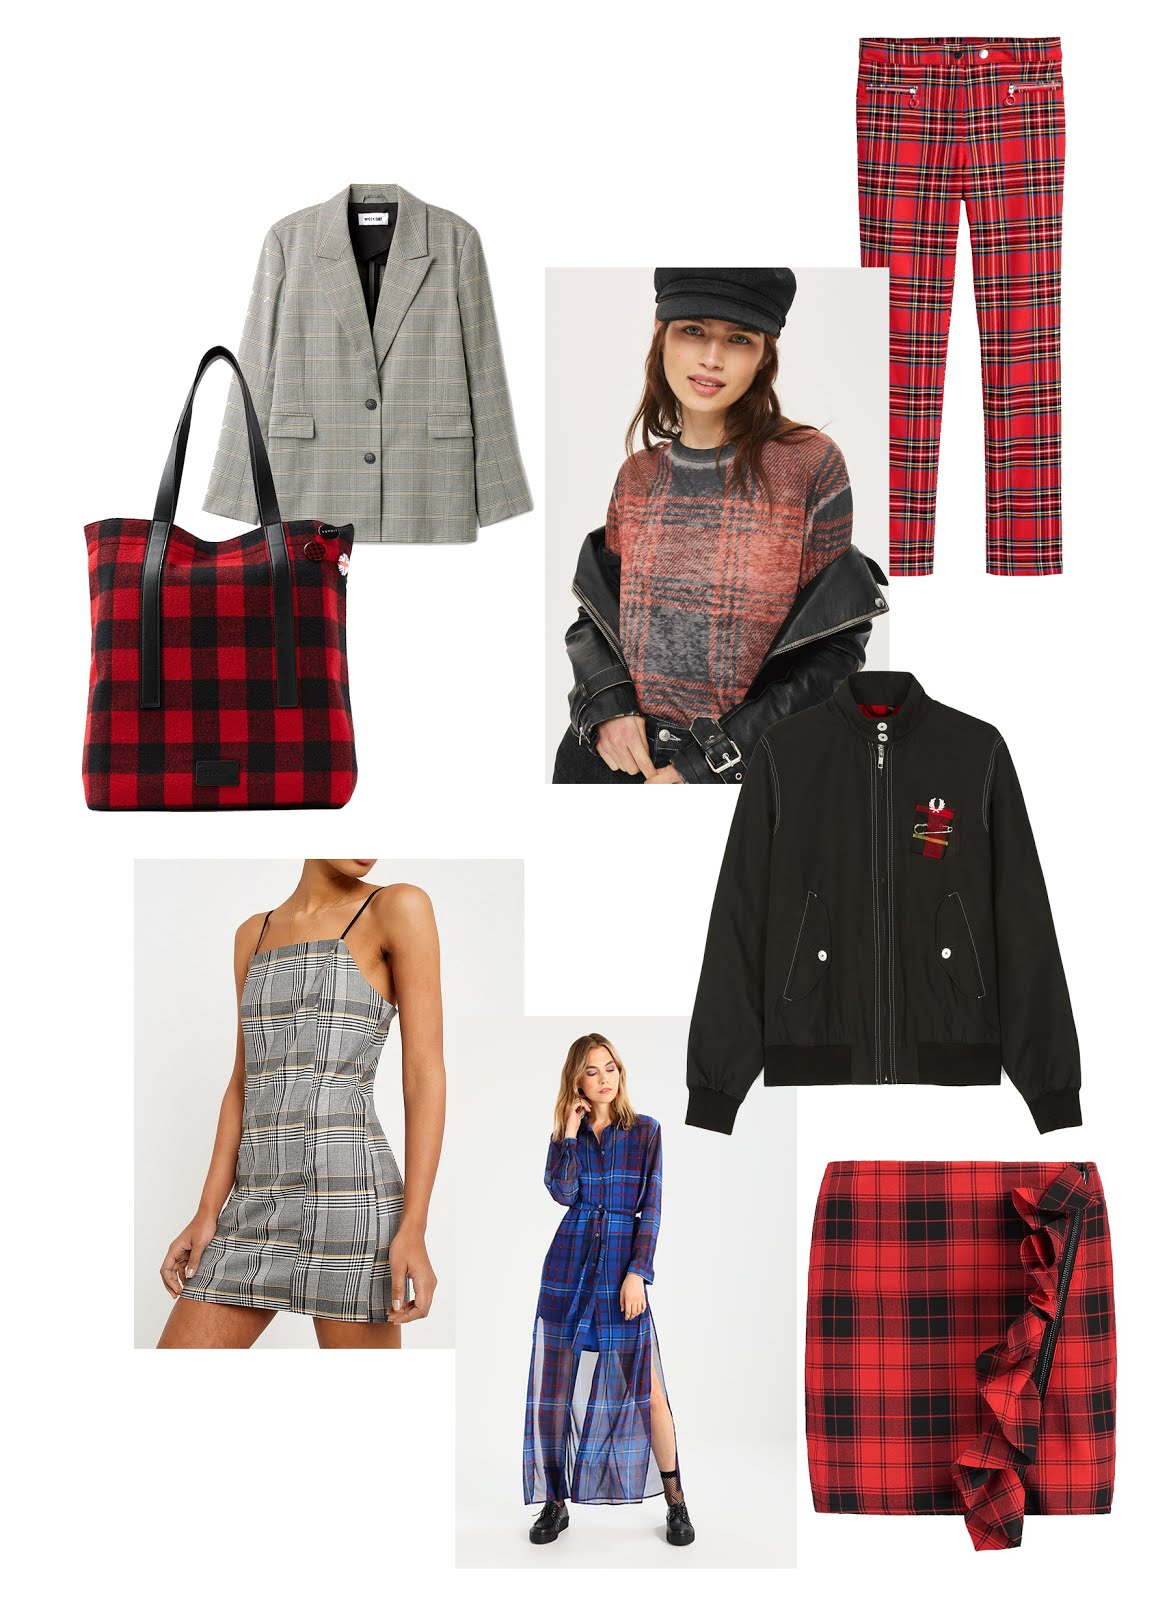 Tartan print, plaid, scottish, skirt, fred perry, harrington, le kilt, tommy hilifiger x gigi hadid, maxi dress, esprit, shopper